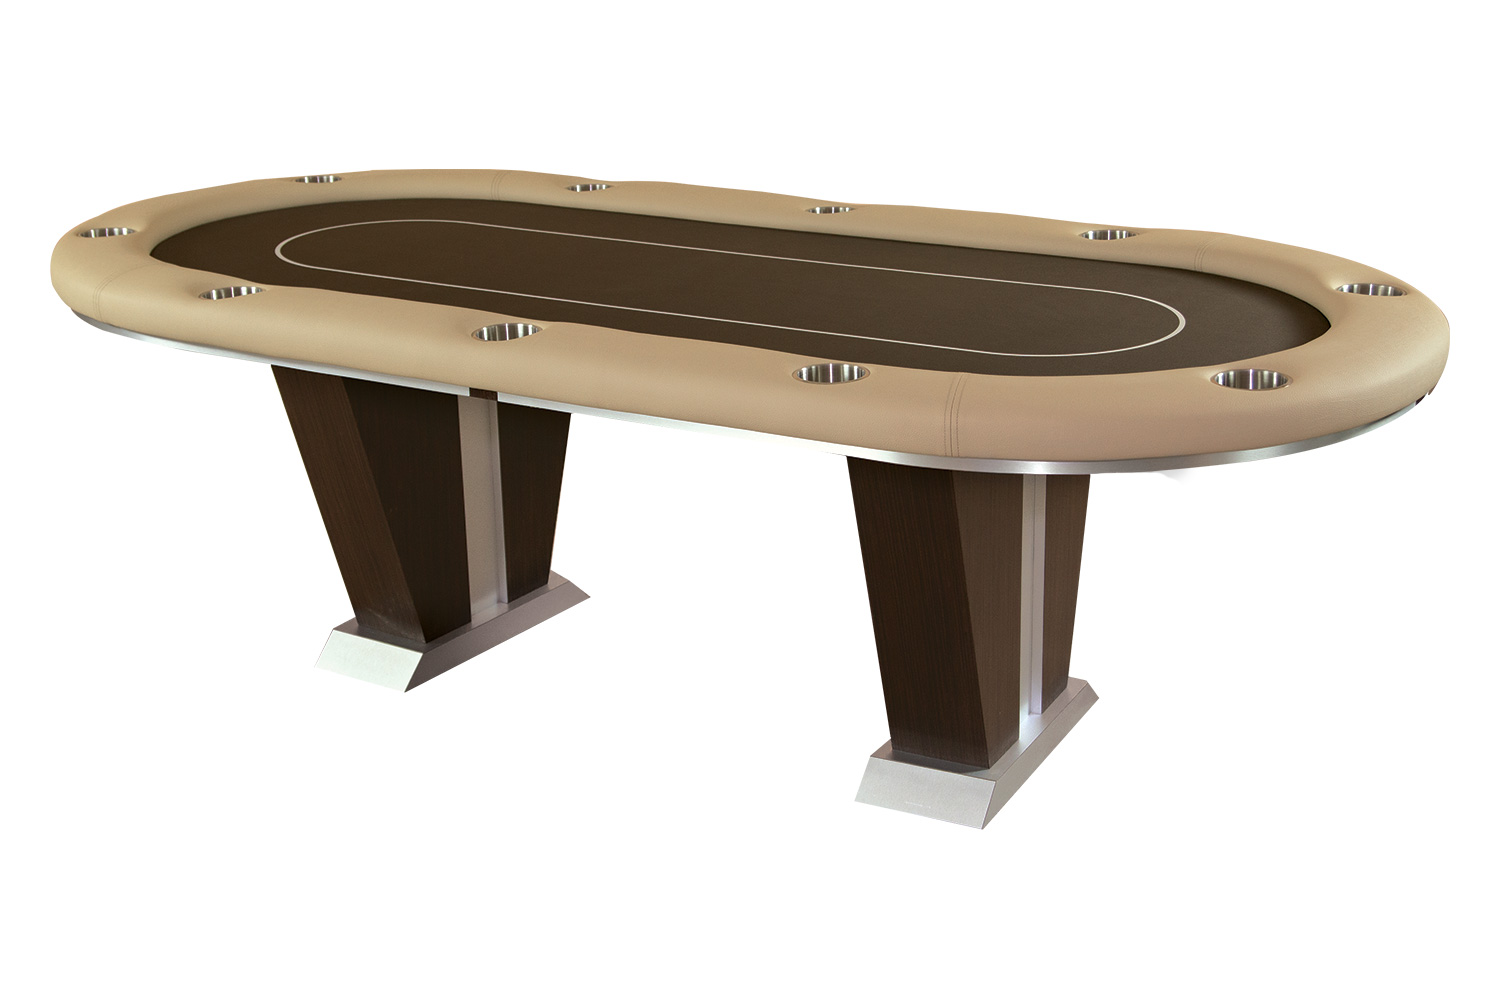 Anubis Texas Hold 'em Poker Table